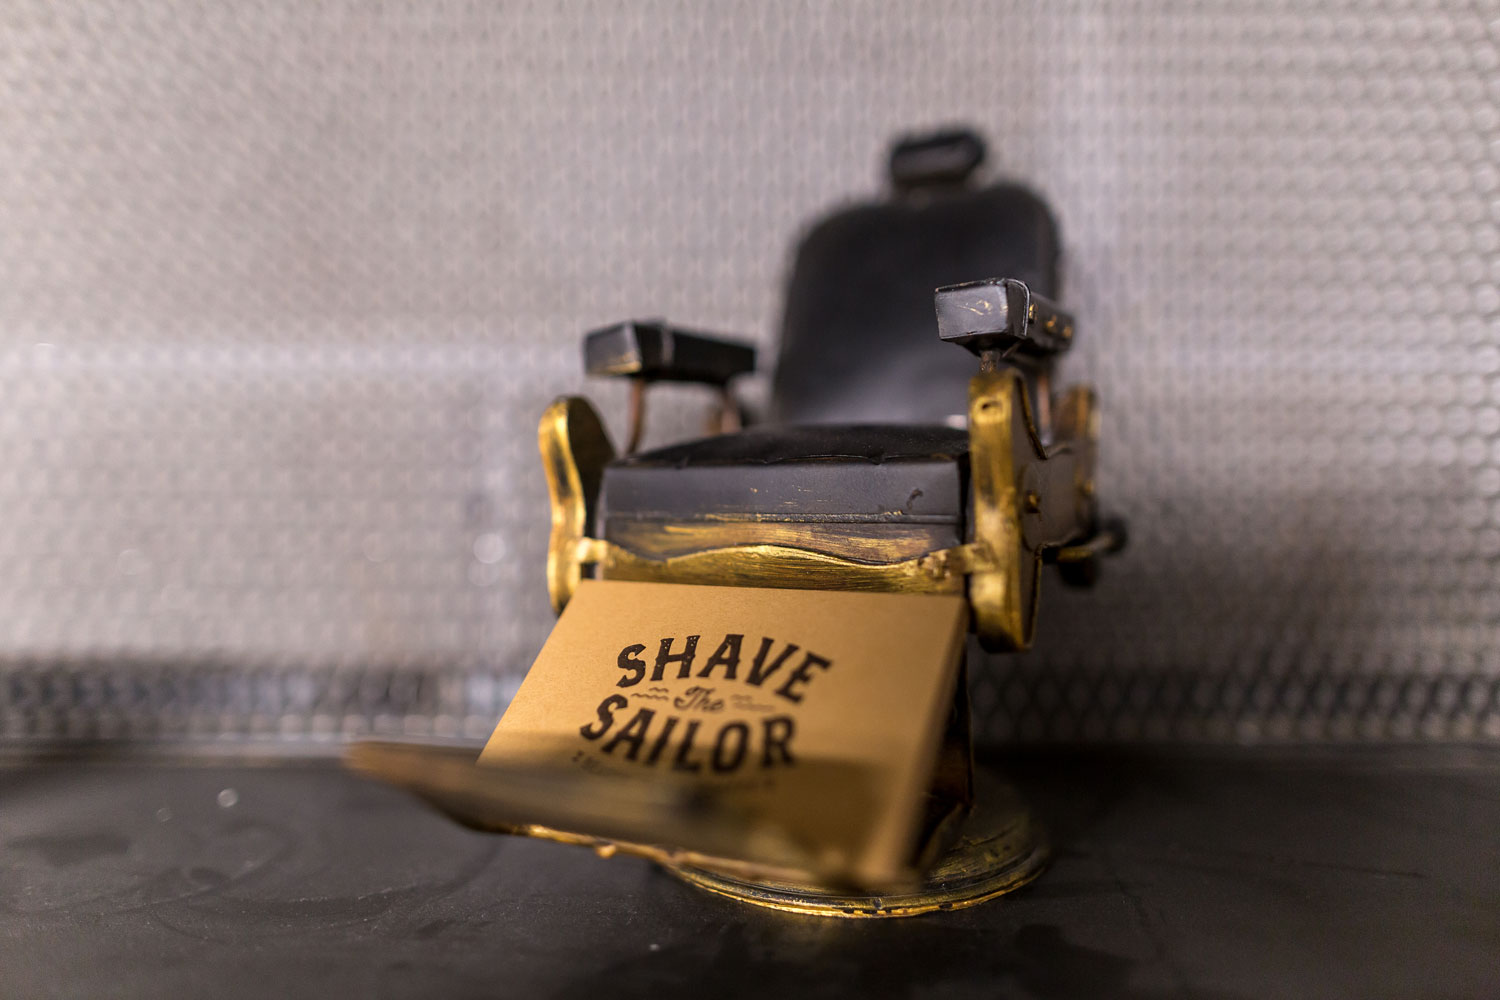 Tarjetas de visita shave the sailor